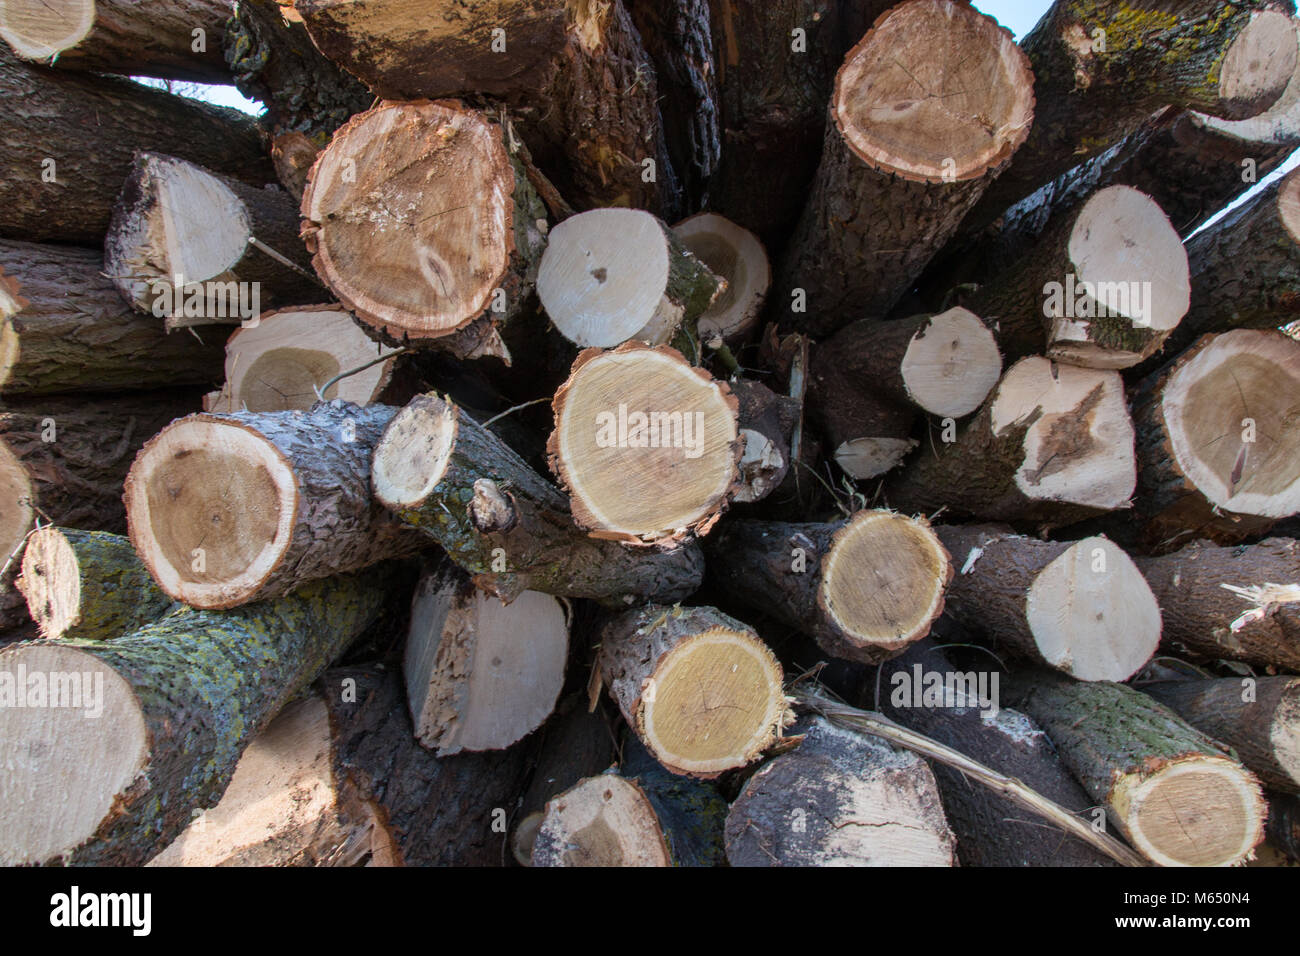 Wooden logs. Timber logging in autumn forest. Freshly cut tree logs piled up as background texture. Stock Photo